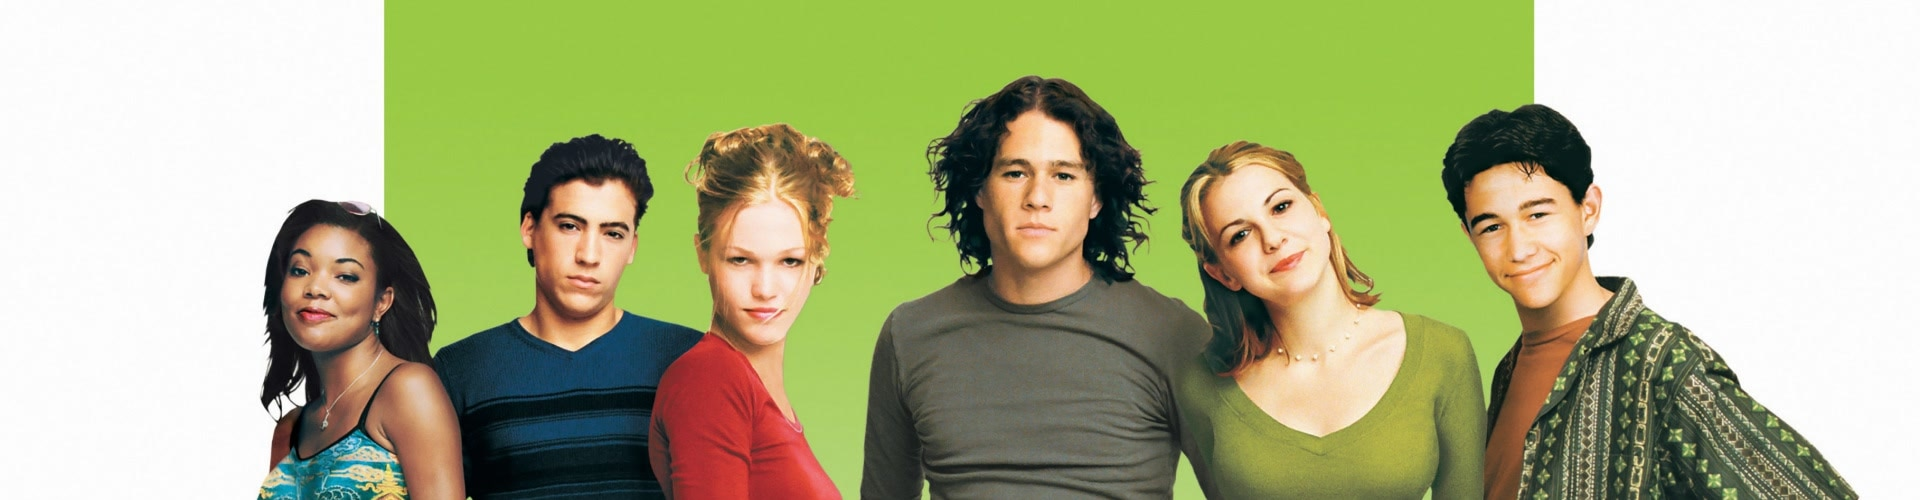 10 things i hate about you taming of the shrew